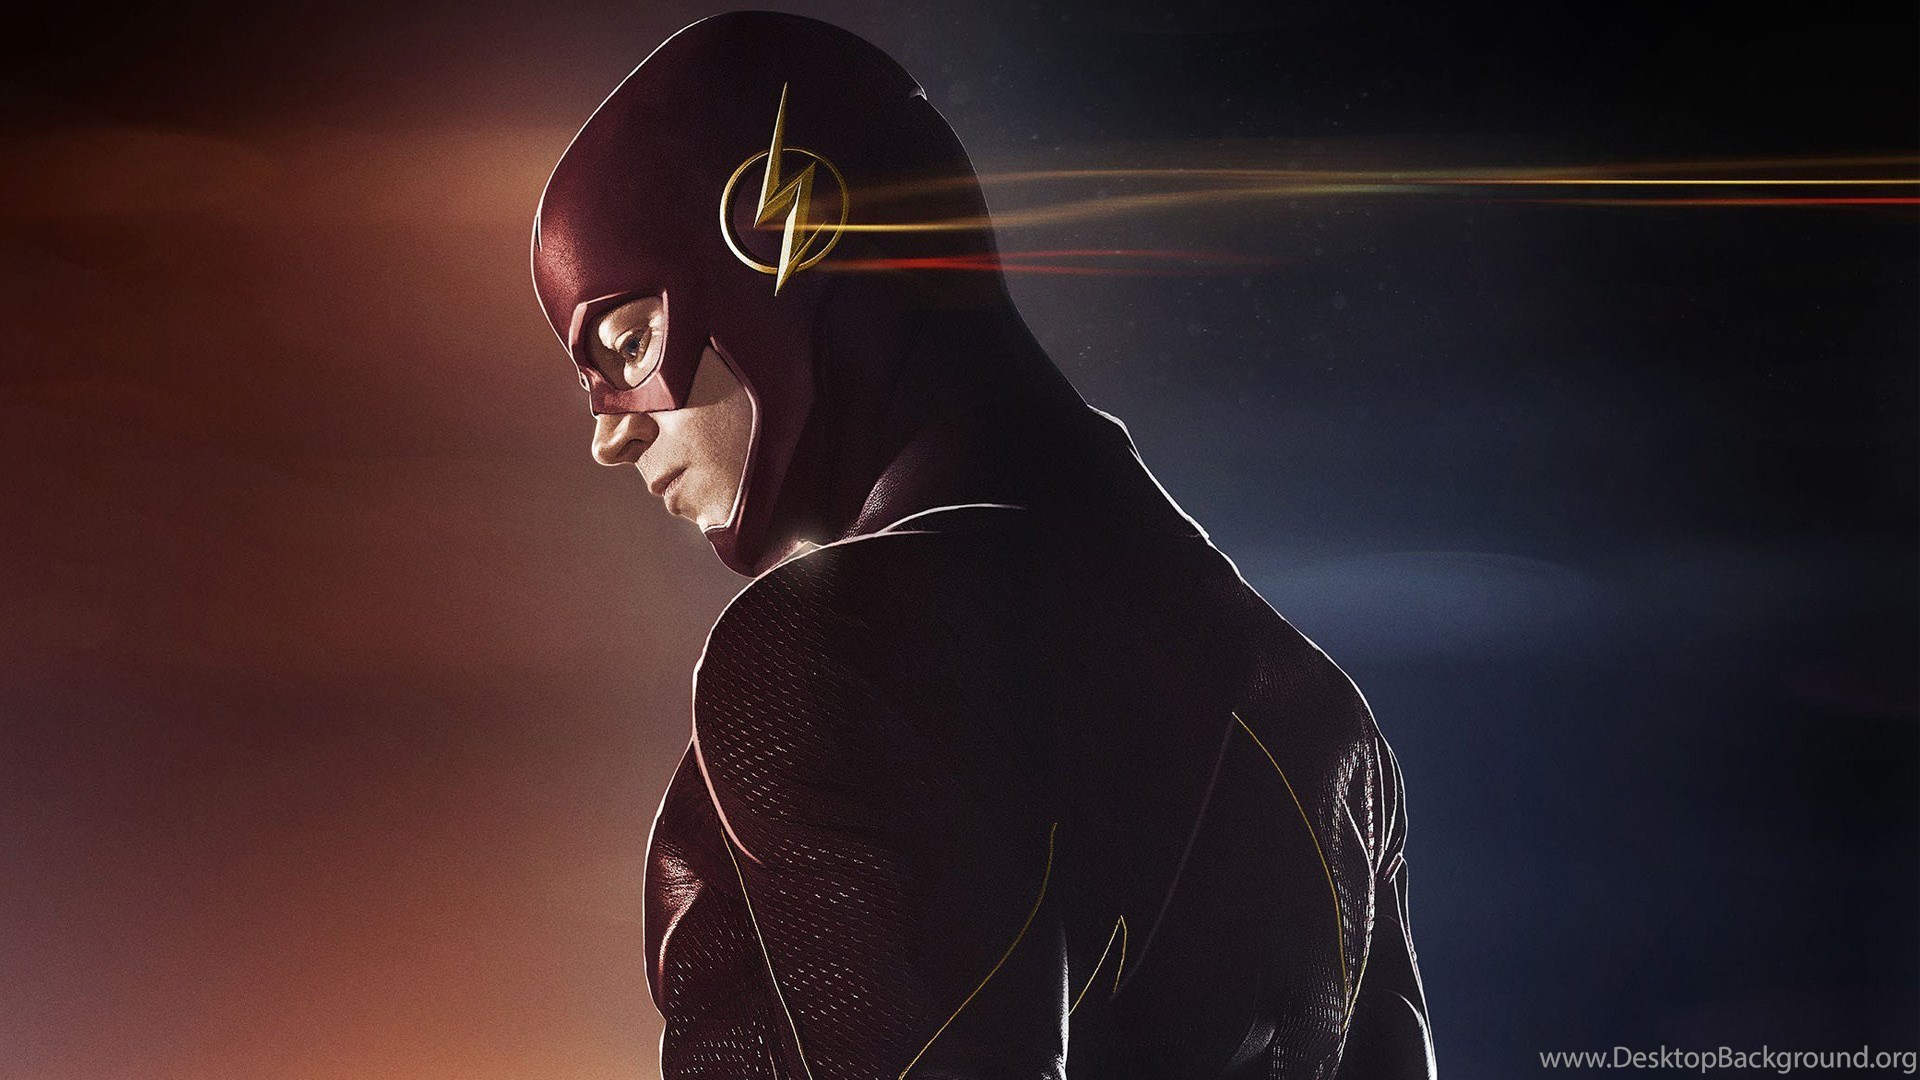 Download The Flash 3 HD Wallpapers In 2048x1152 Screen Resolution